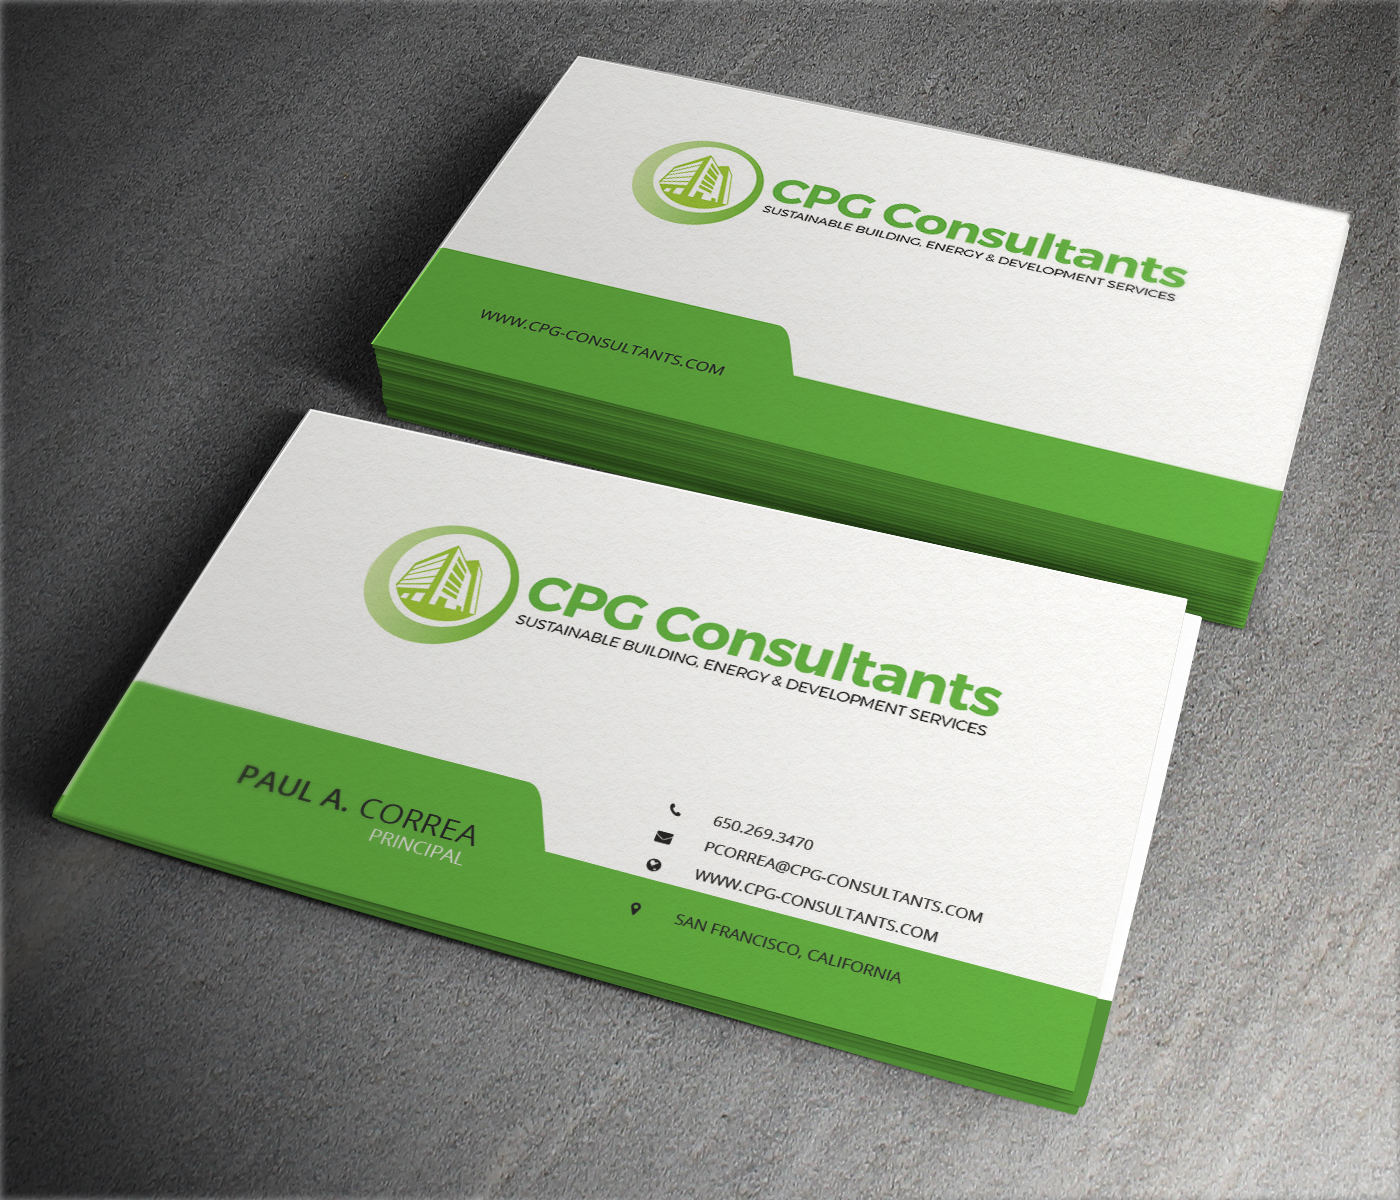 Elegant playful real estate business card design for cpg business card design by themedesk technology for cpg consultants design 5770042 colourmoves